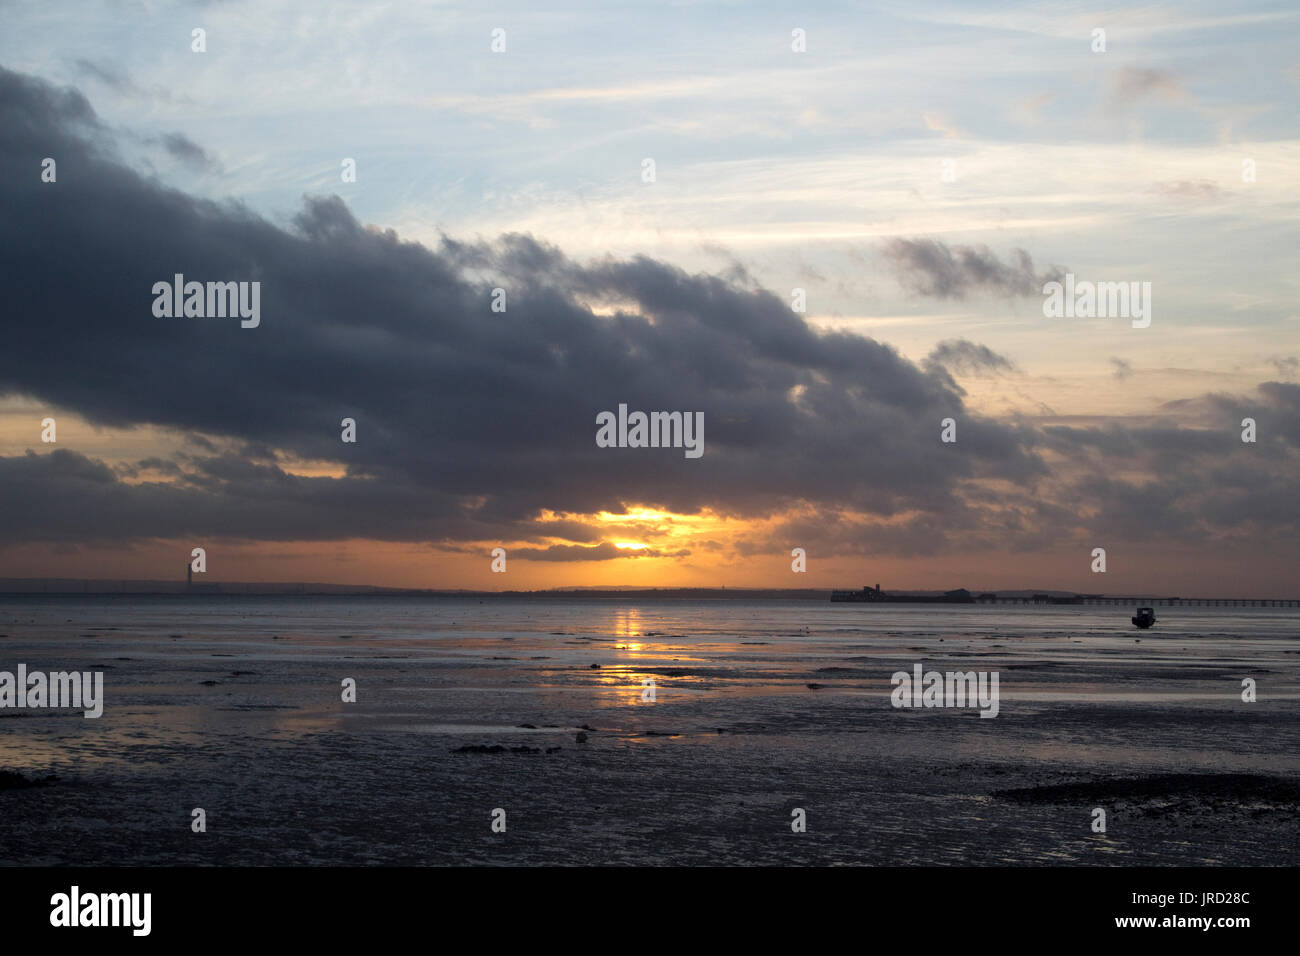 Winter Sunset at Southend-on-Sea, Essex, England - Stock Image